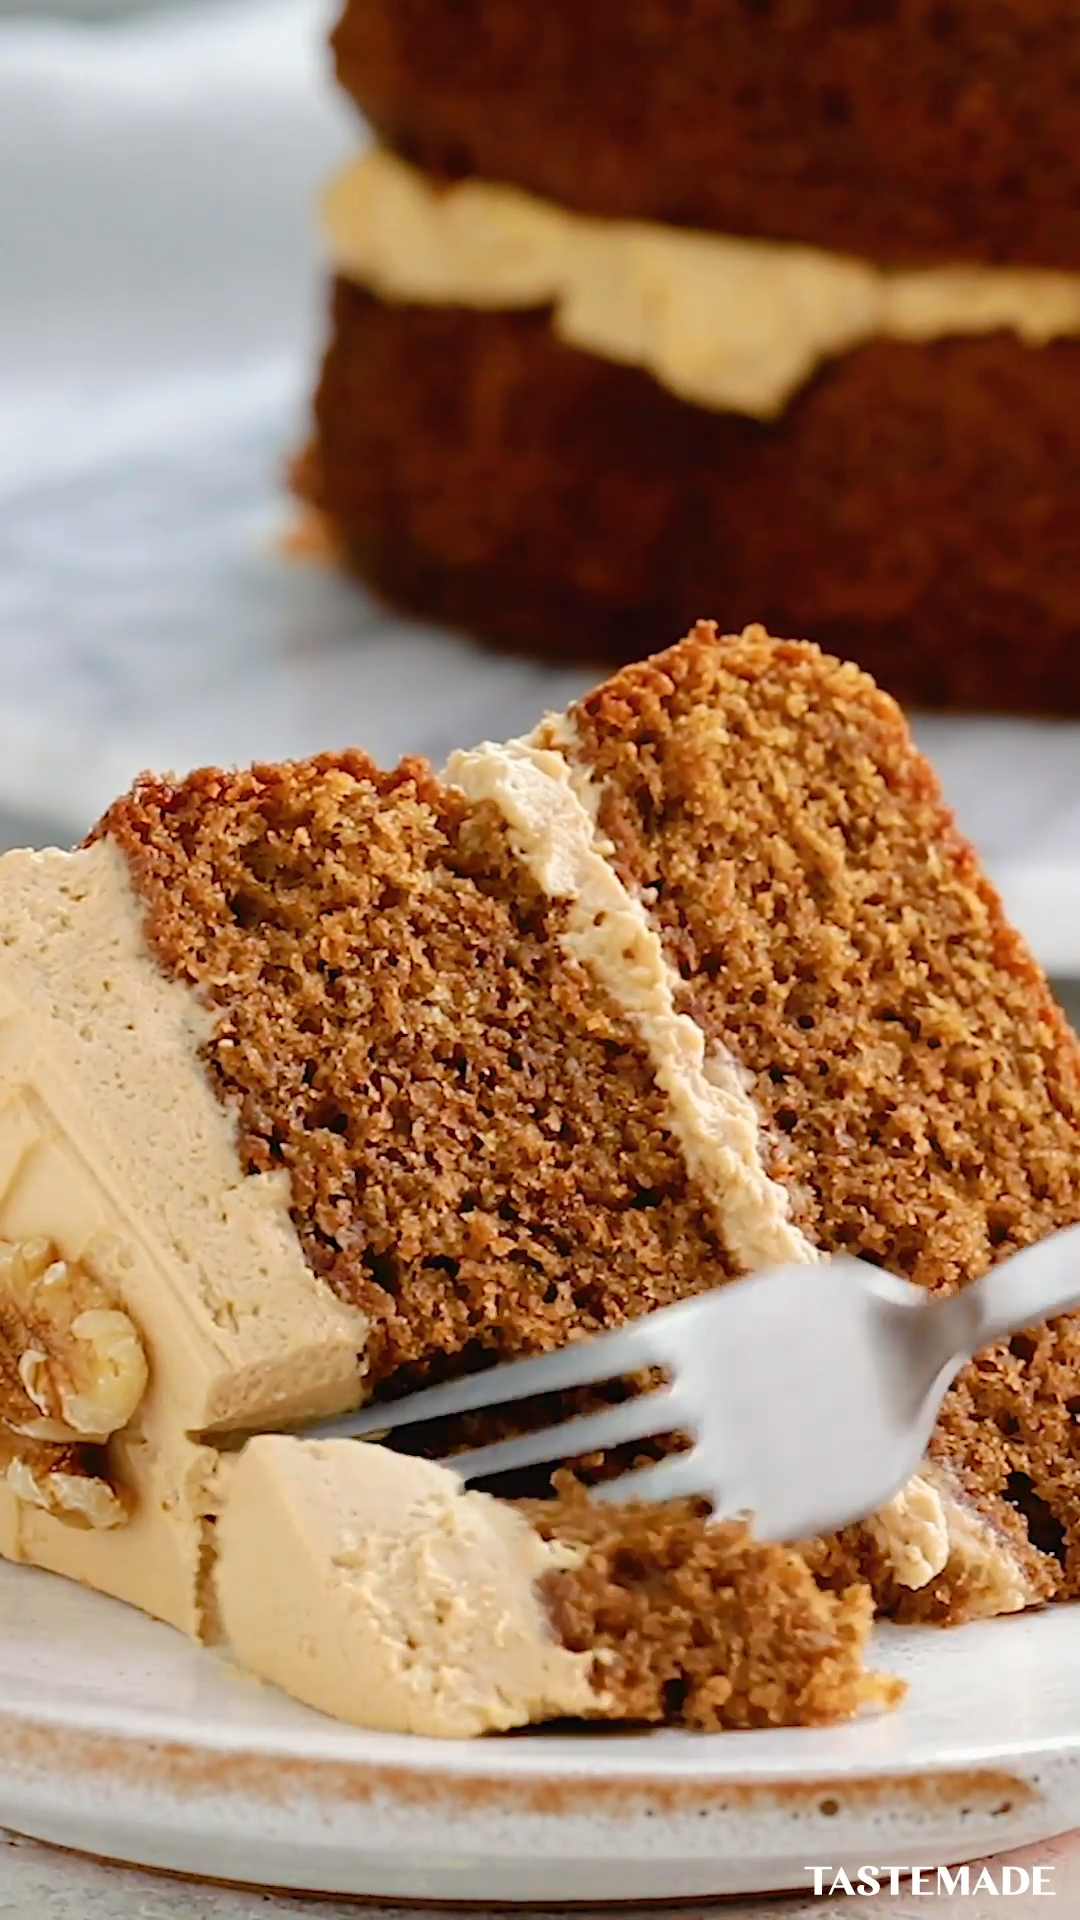 Best-Ever Coffee Layer Cake